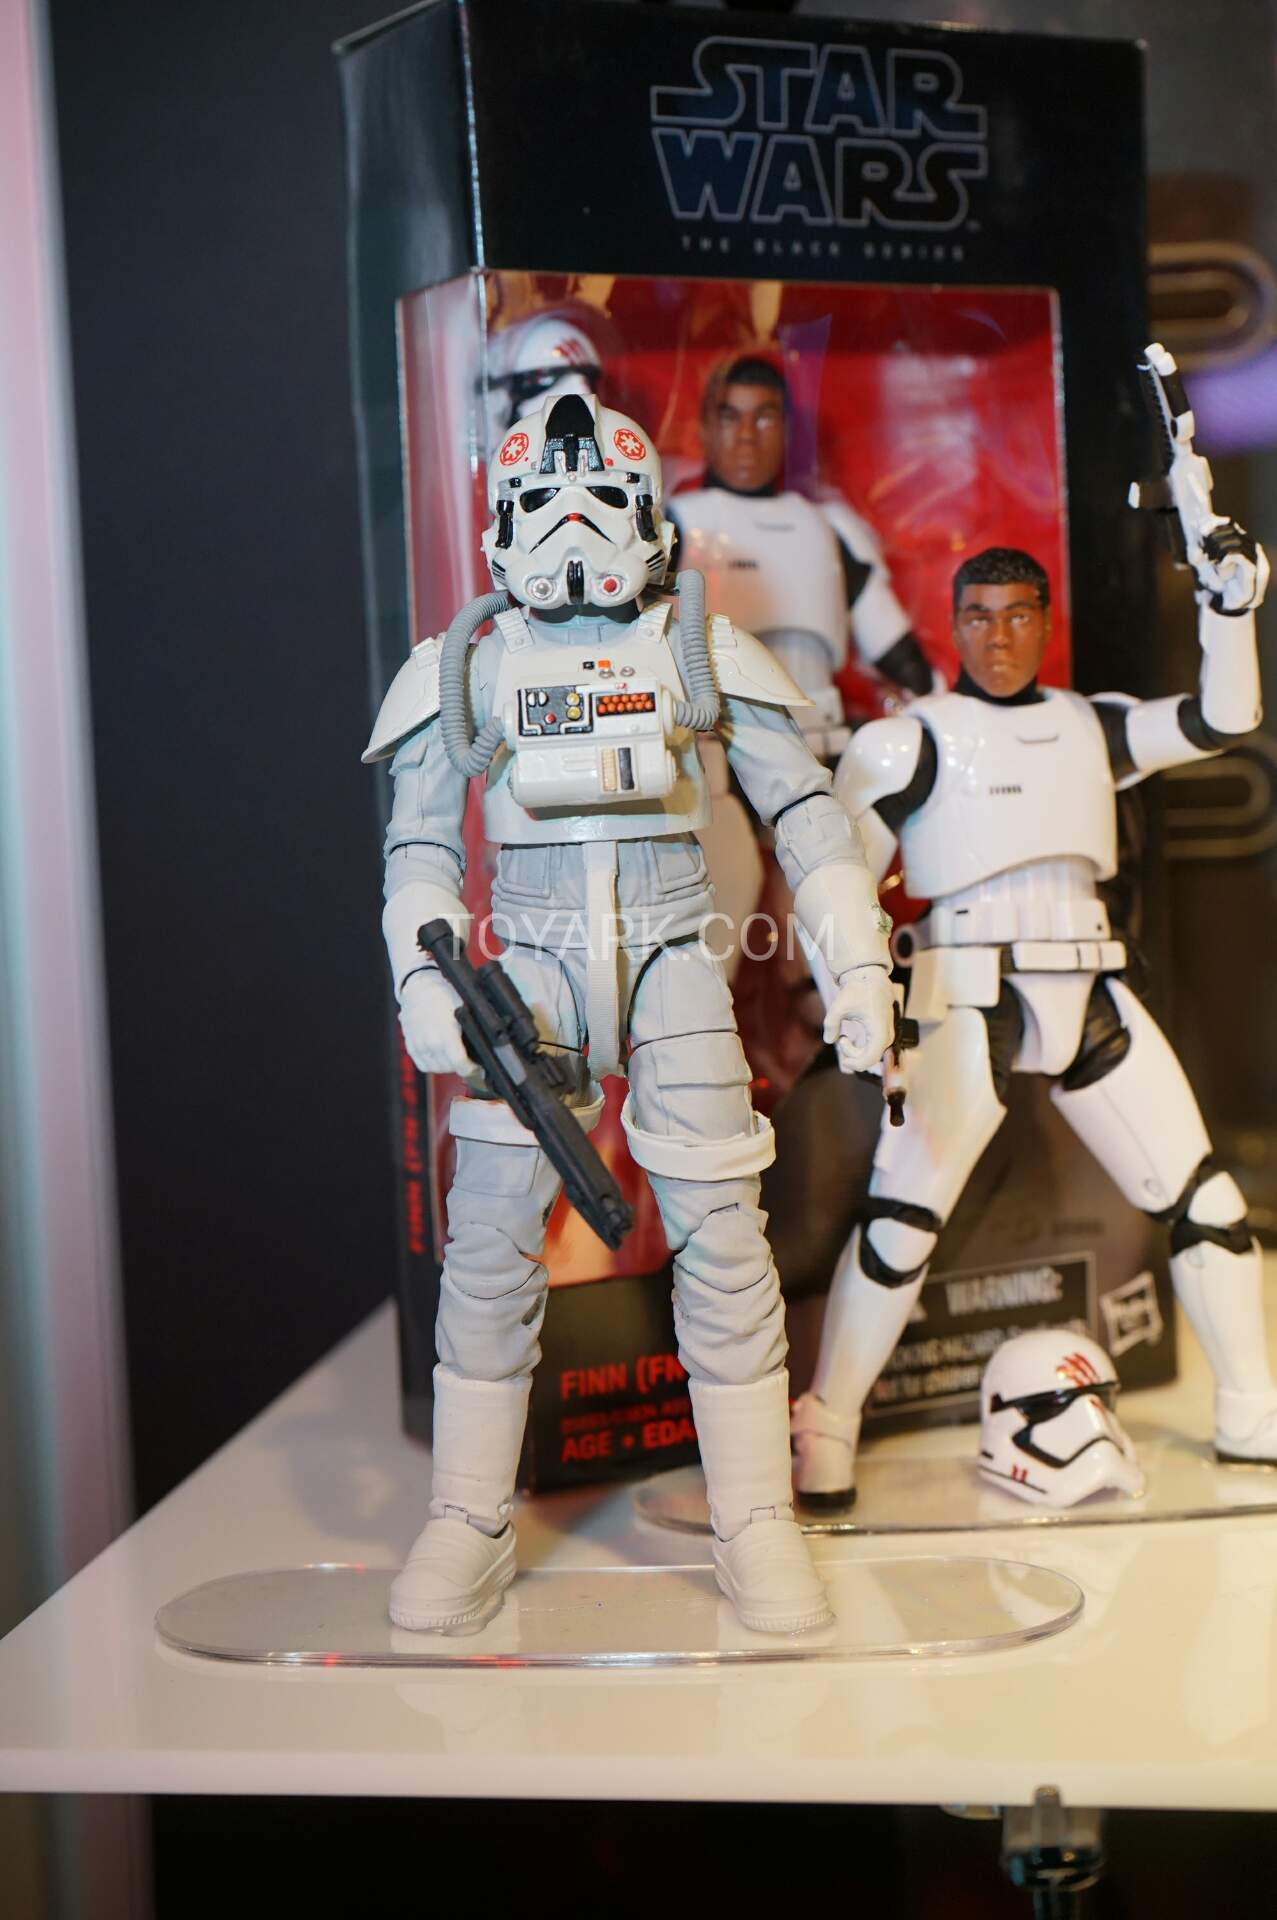 Star Wars Toys Hasbro : Toy fair hasbro star wars display the toyark news